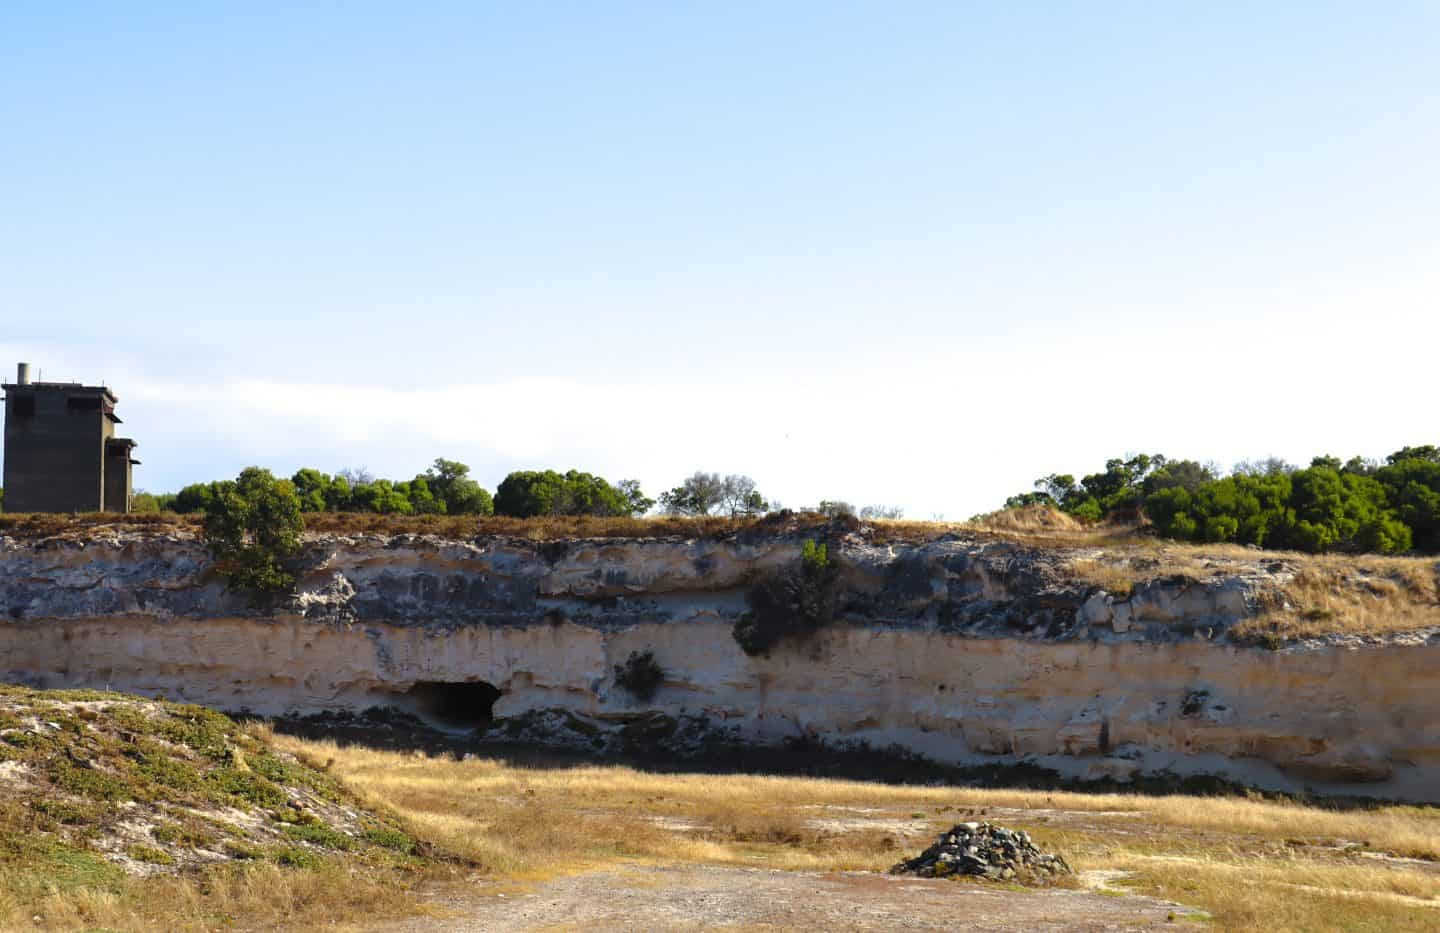 The Quarry at Robben Island